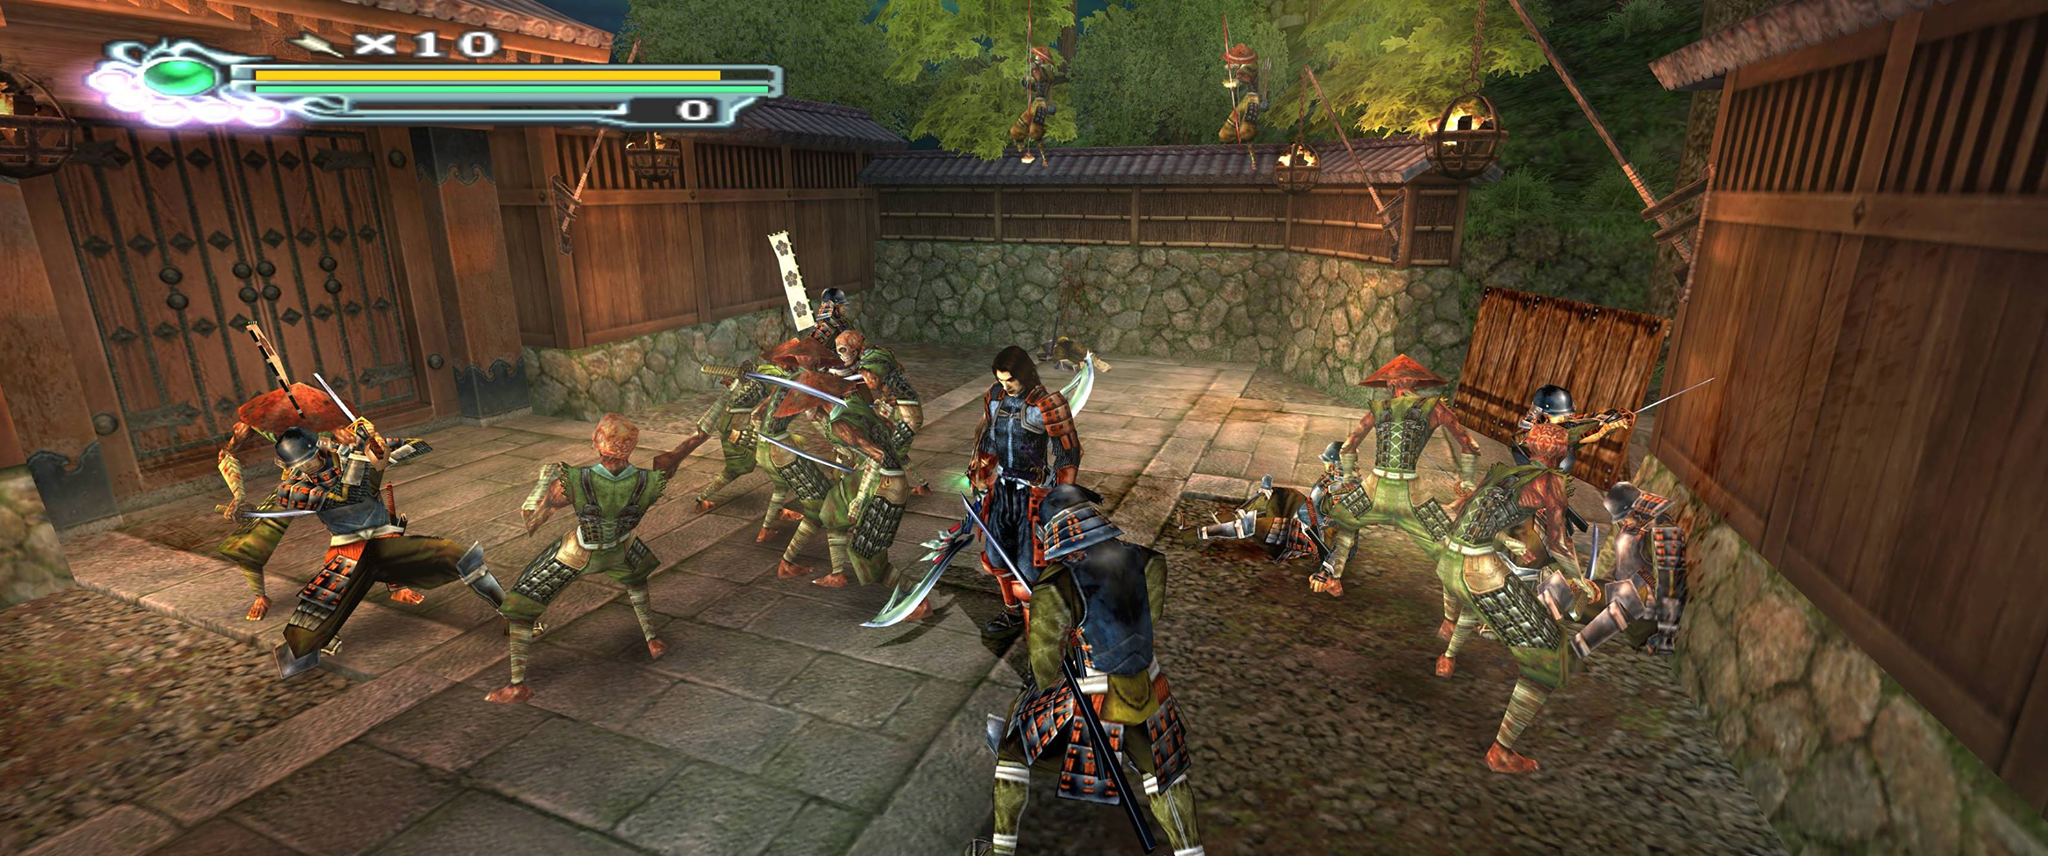 Top 10 Demon-Killing Games Onimusha Image